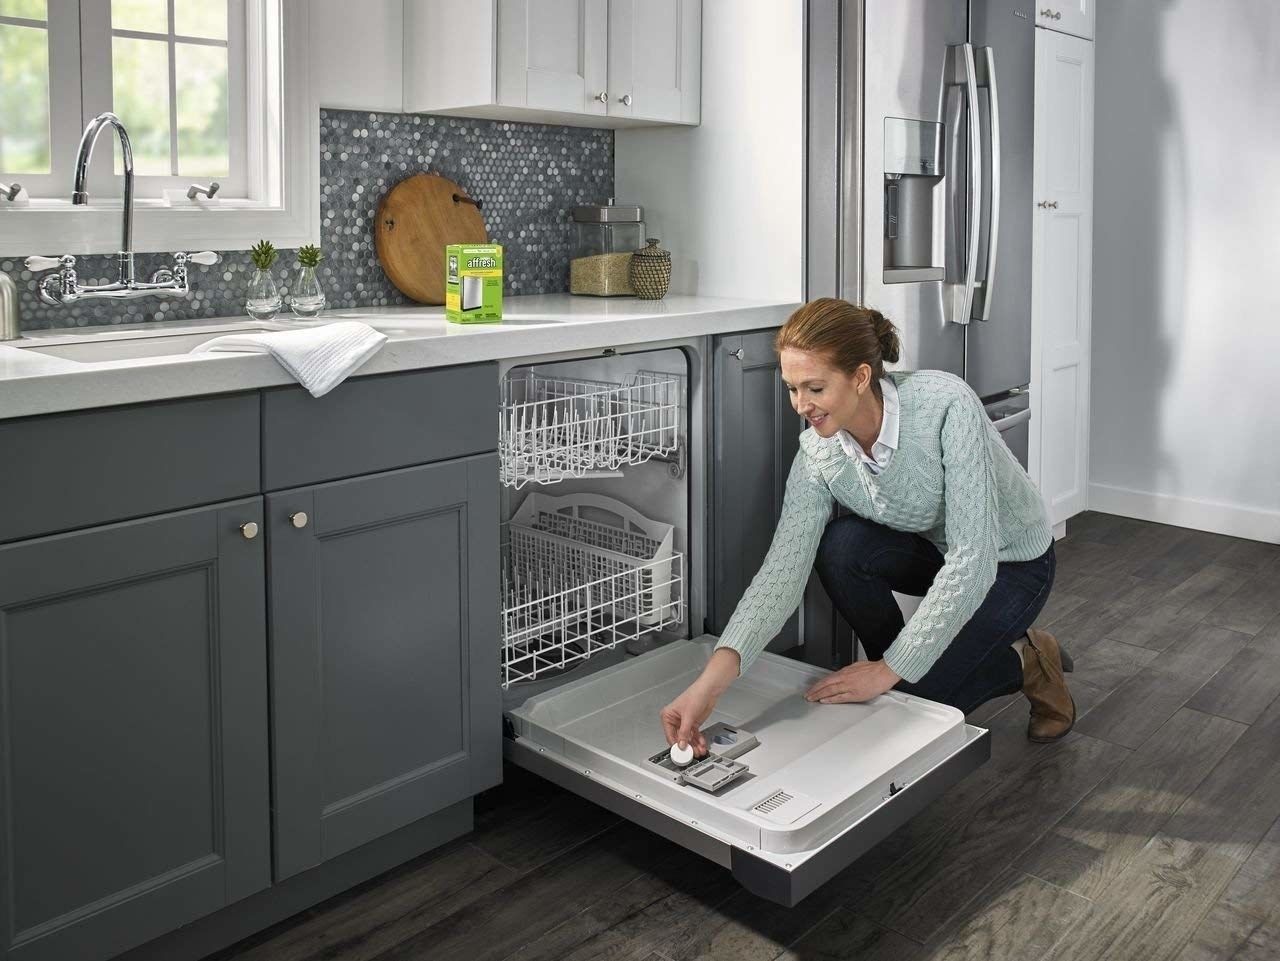 Model puts small tab of cleaner into empty dishwasher